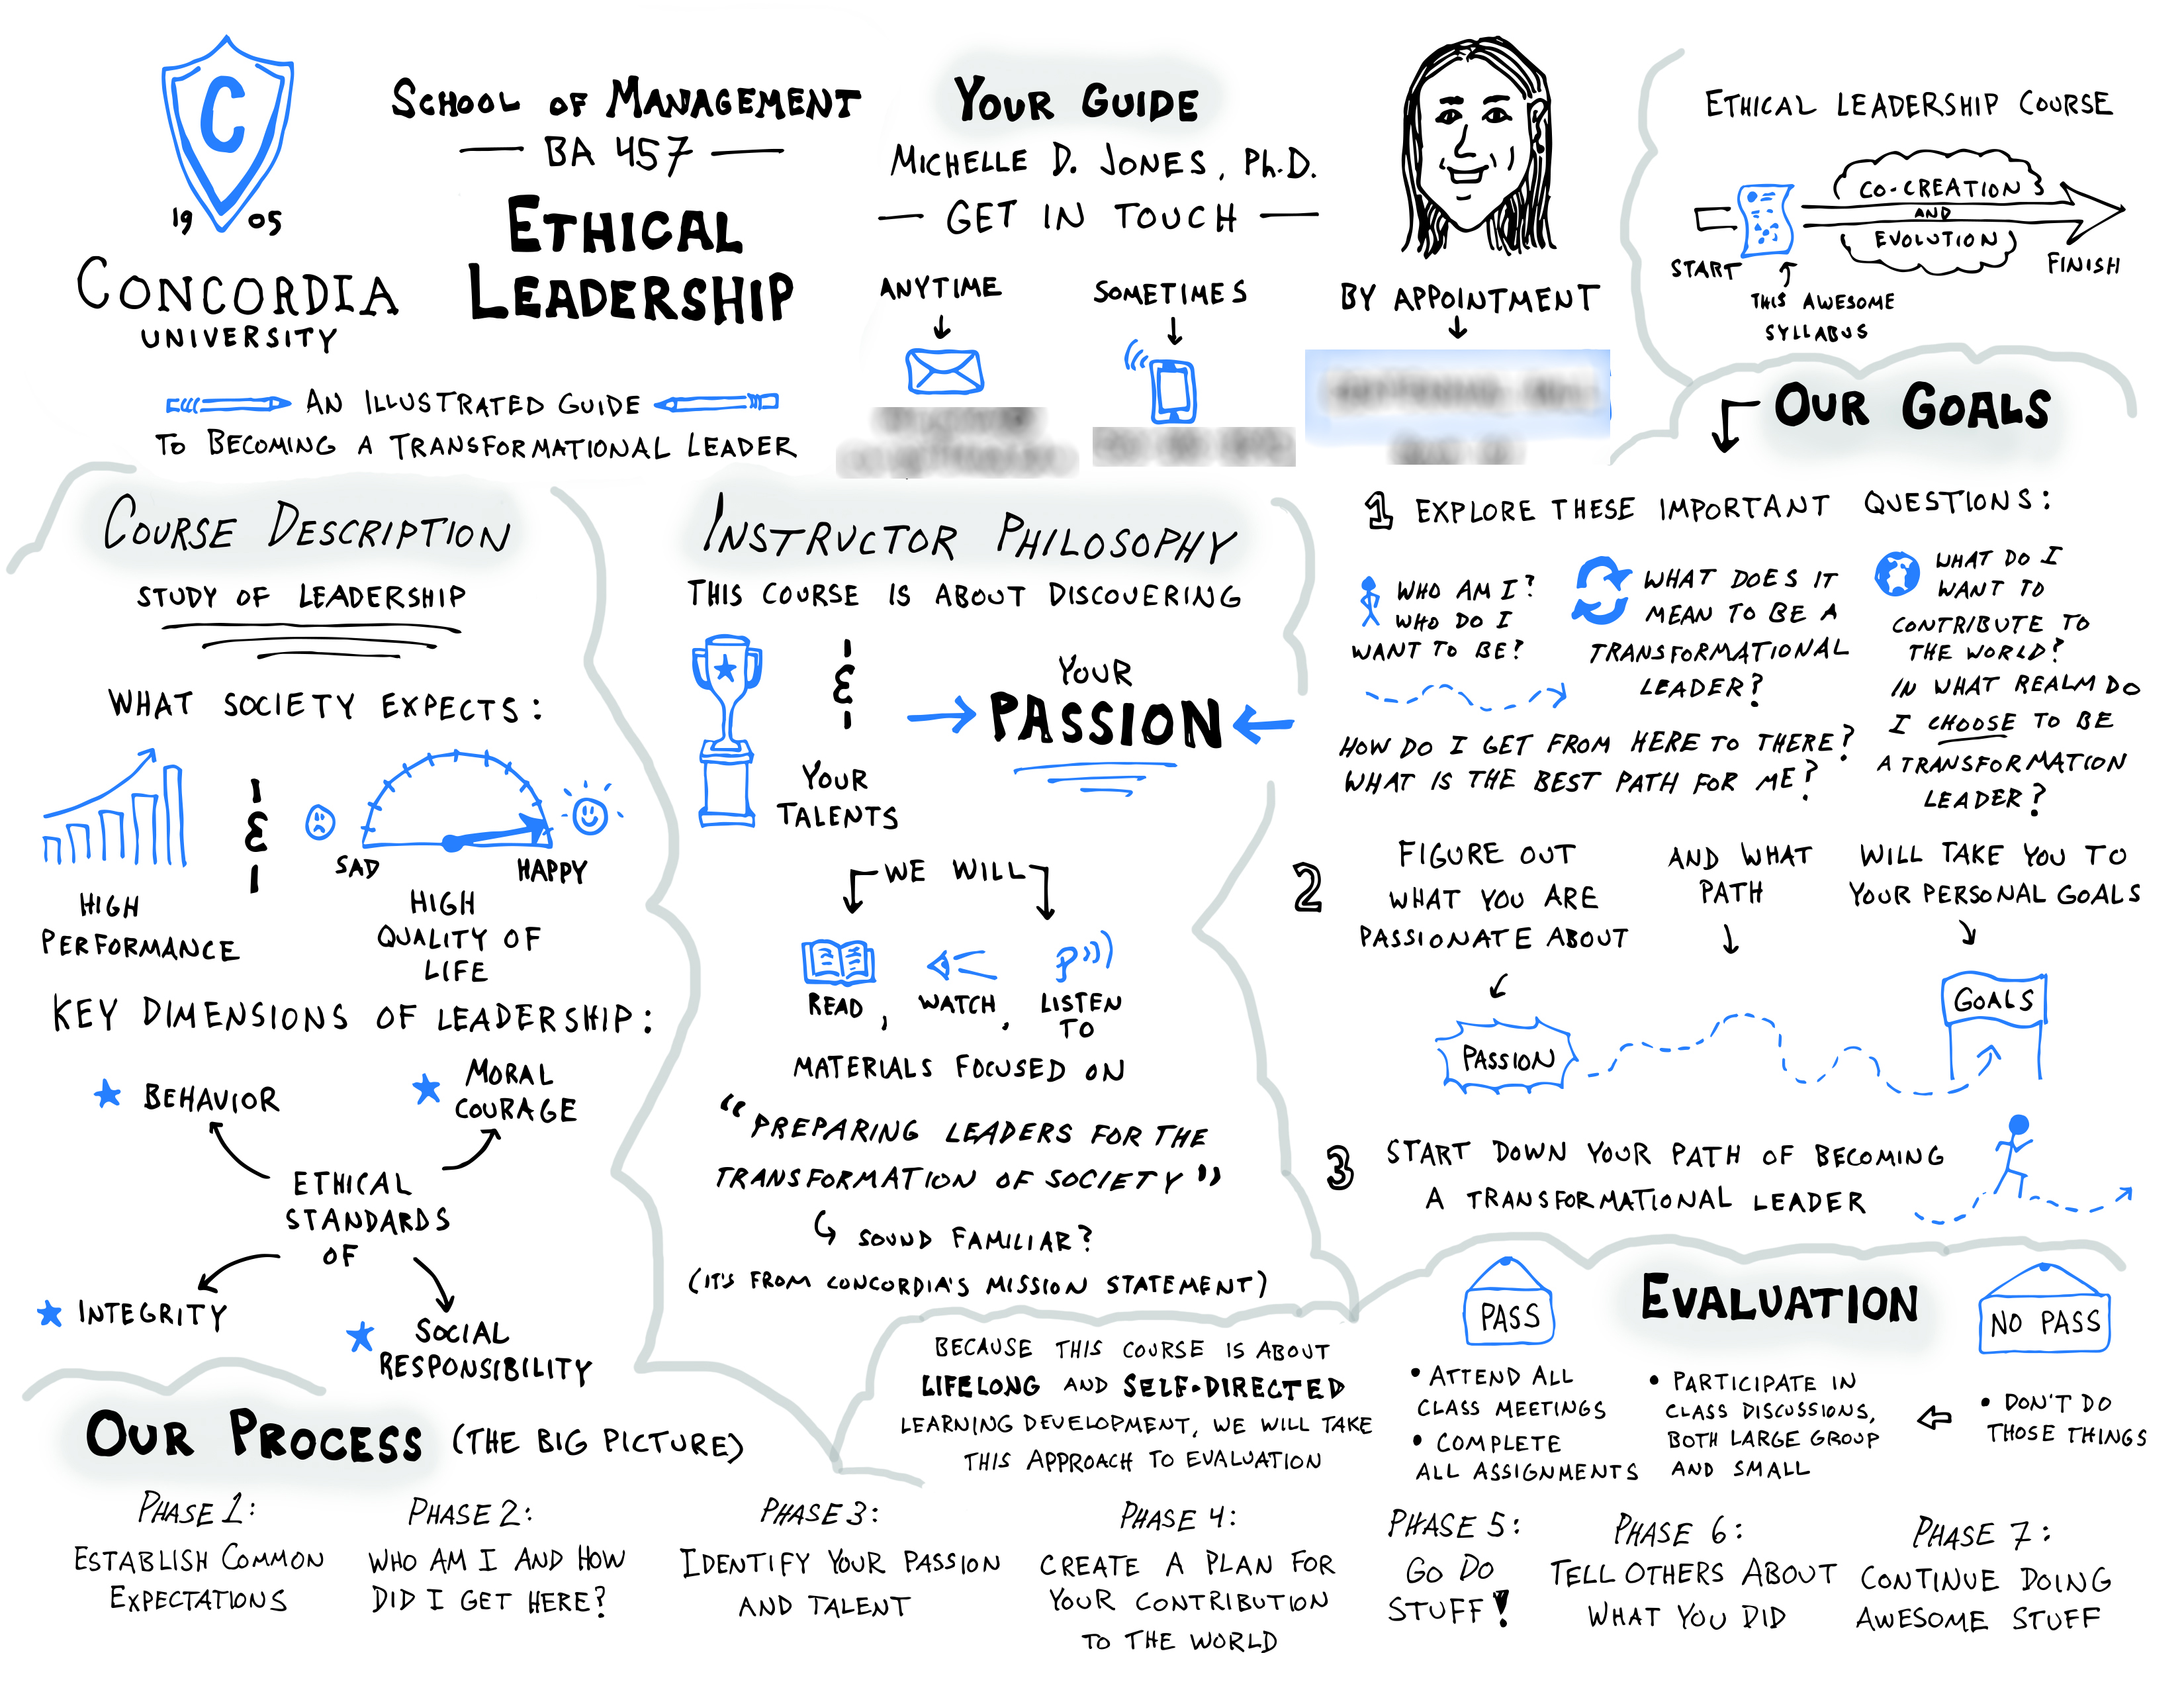 Sketchnoted Syllabus for Ethical Leadership Course (Page 1) - Doug Neill Sketchnotes - Concordia University